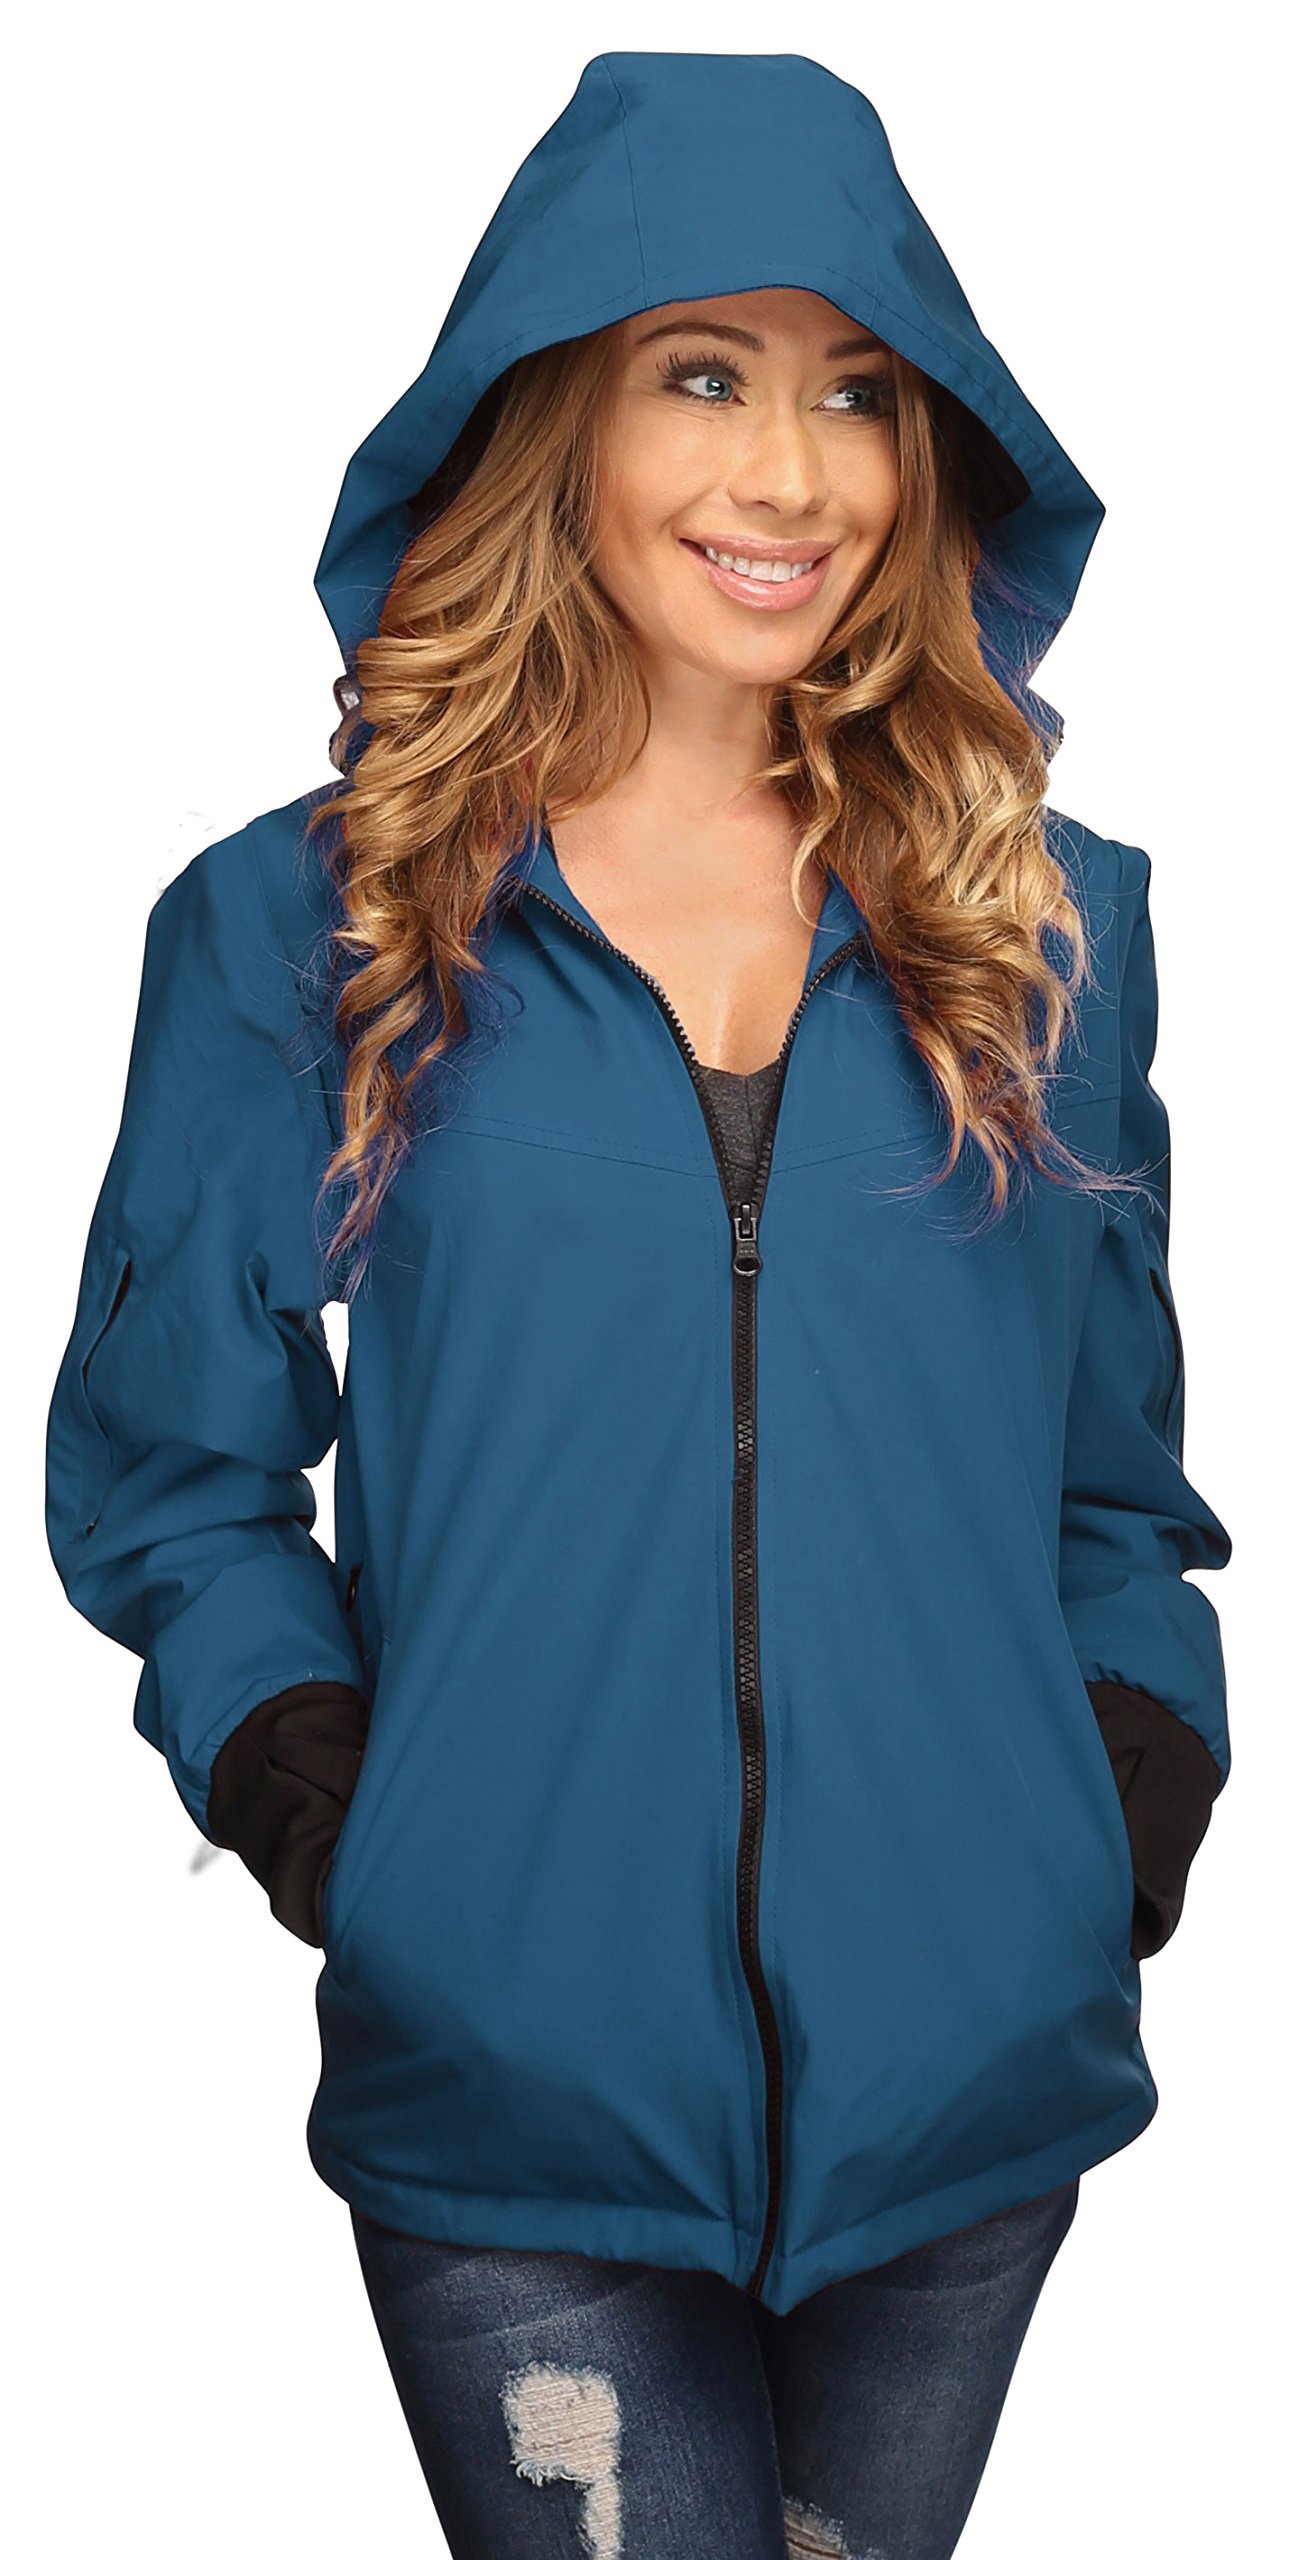 Joey Travel Jacket with Hidden Pockets. (Medium, Blue) by Global Travel Clothing